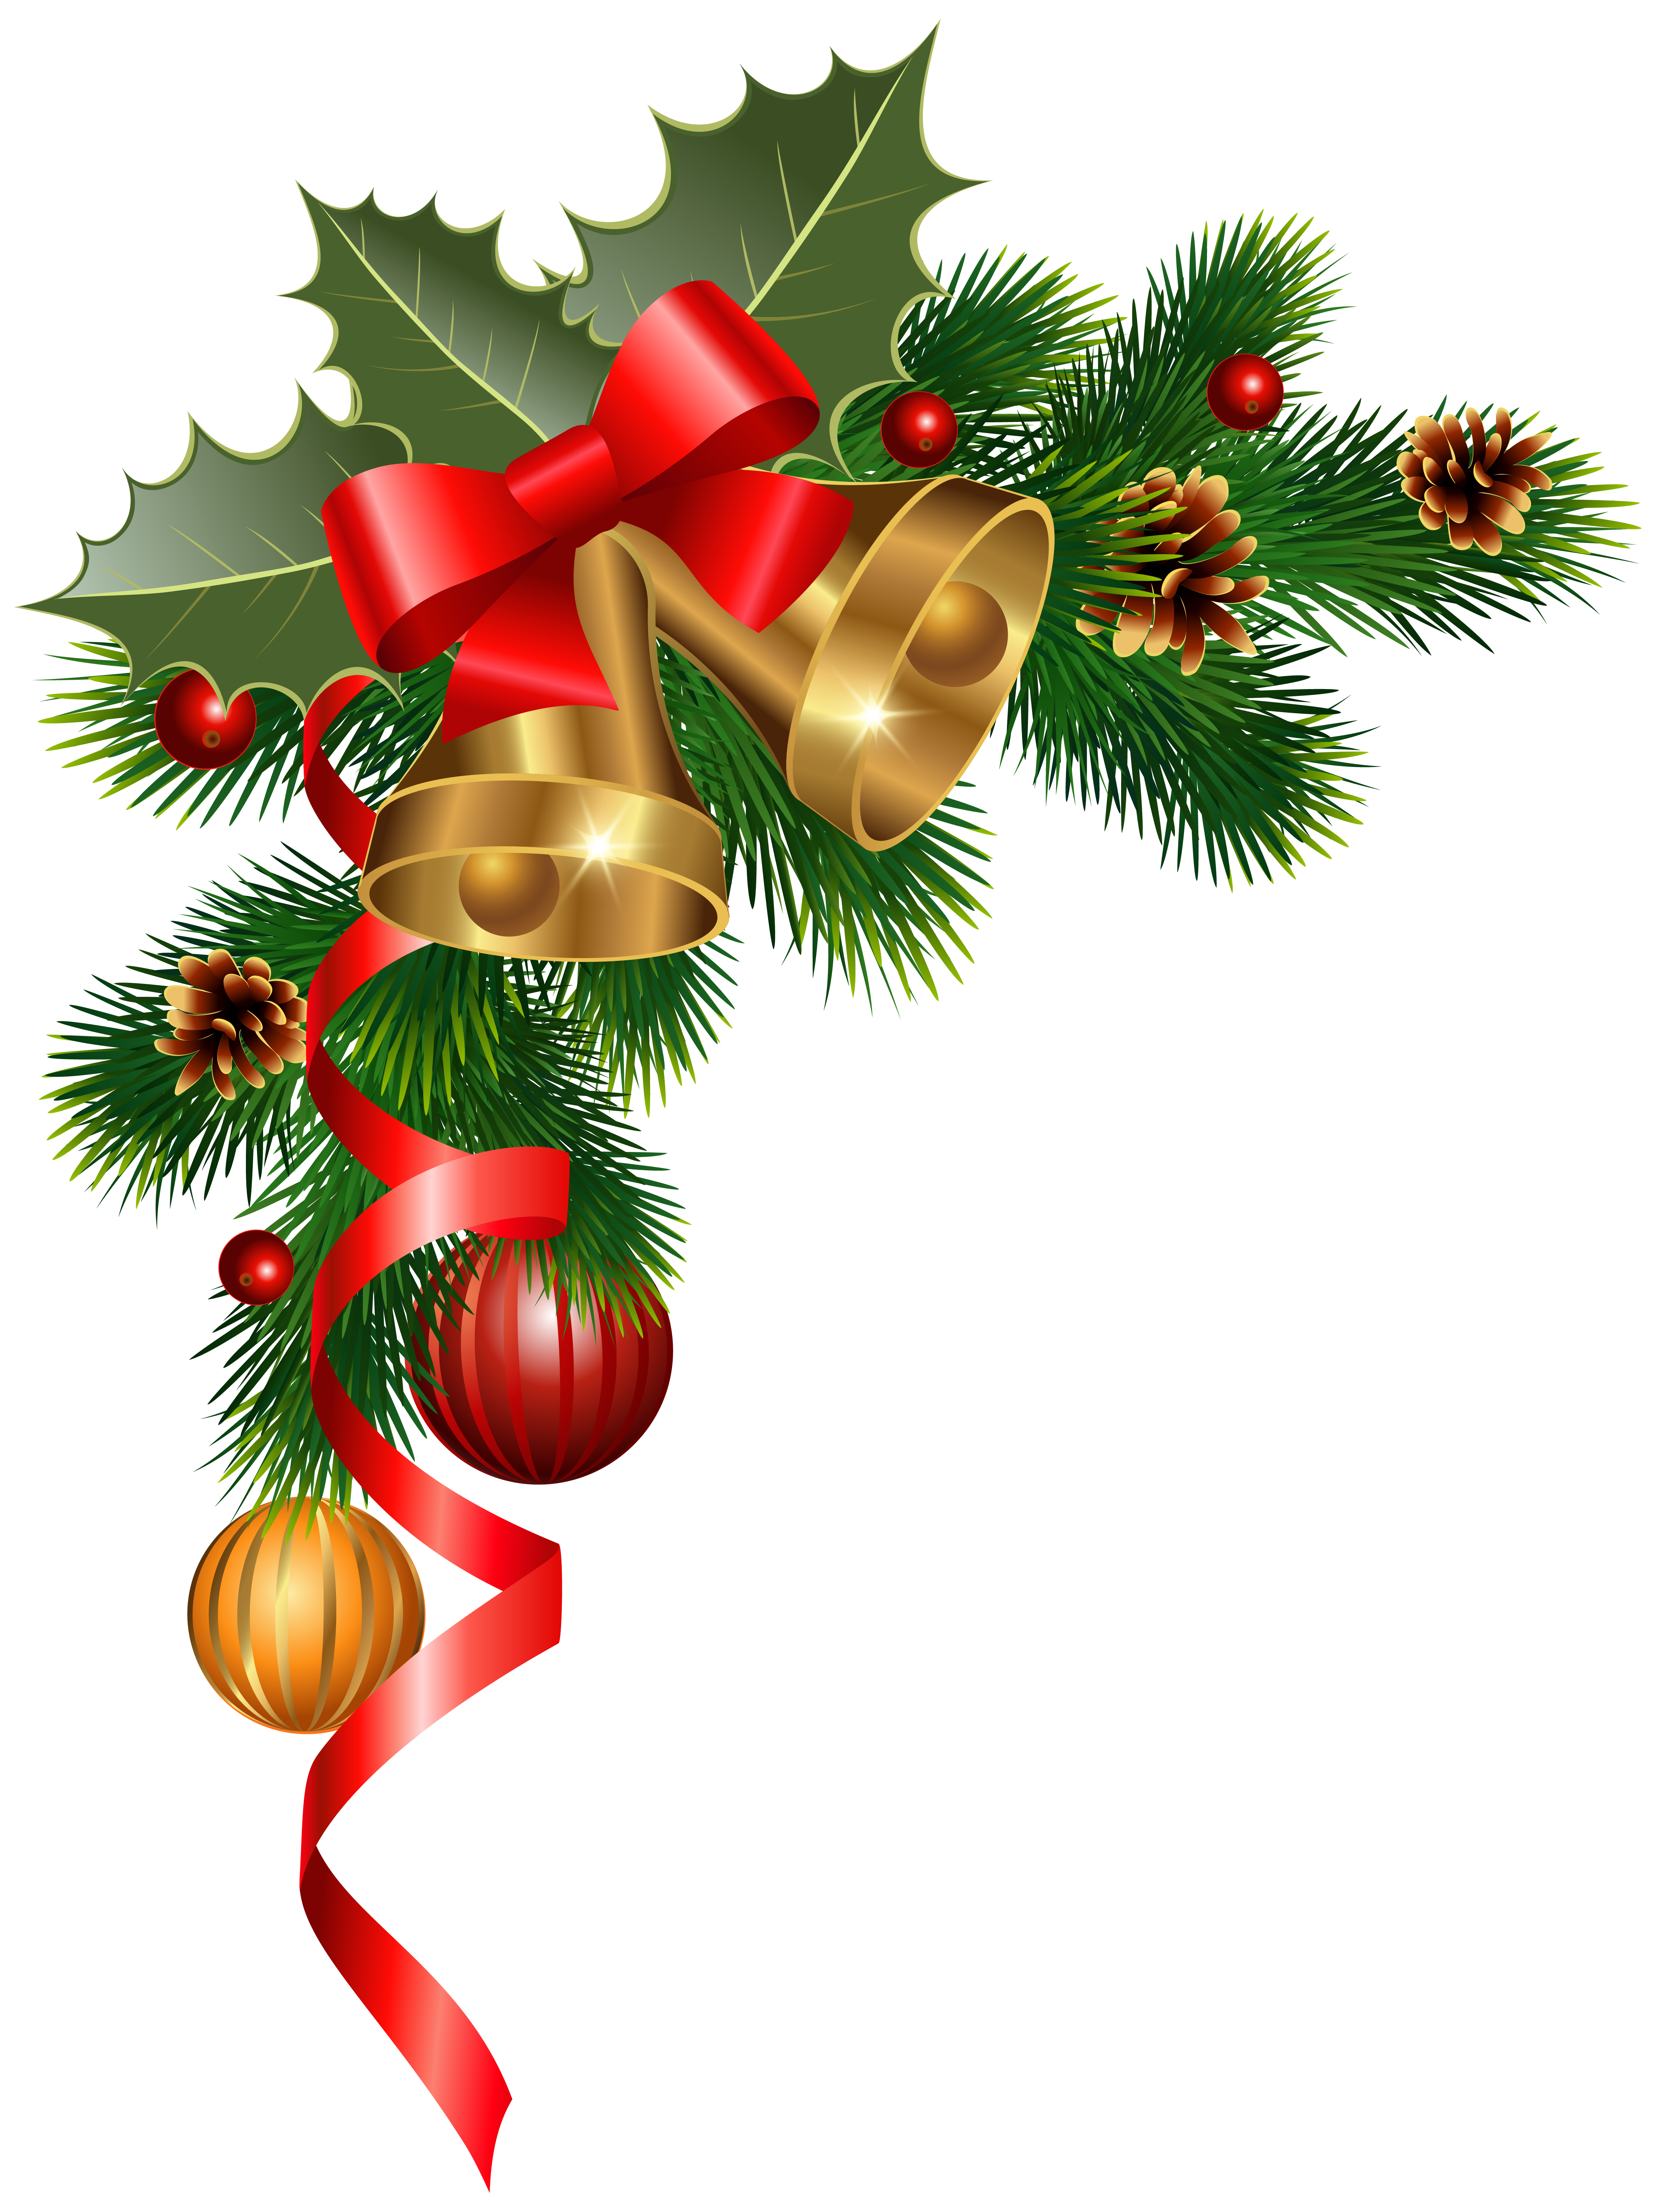 Christmas clipart corner. Borders images pictures becuo